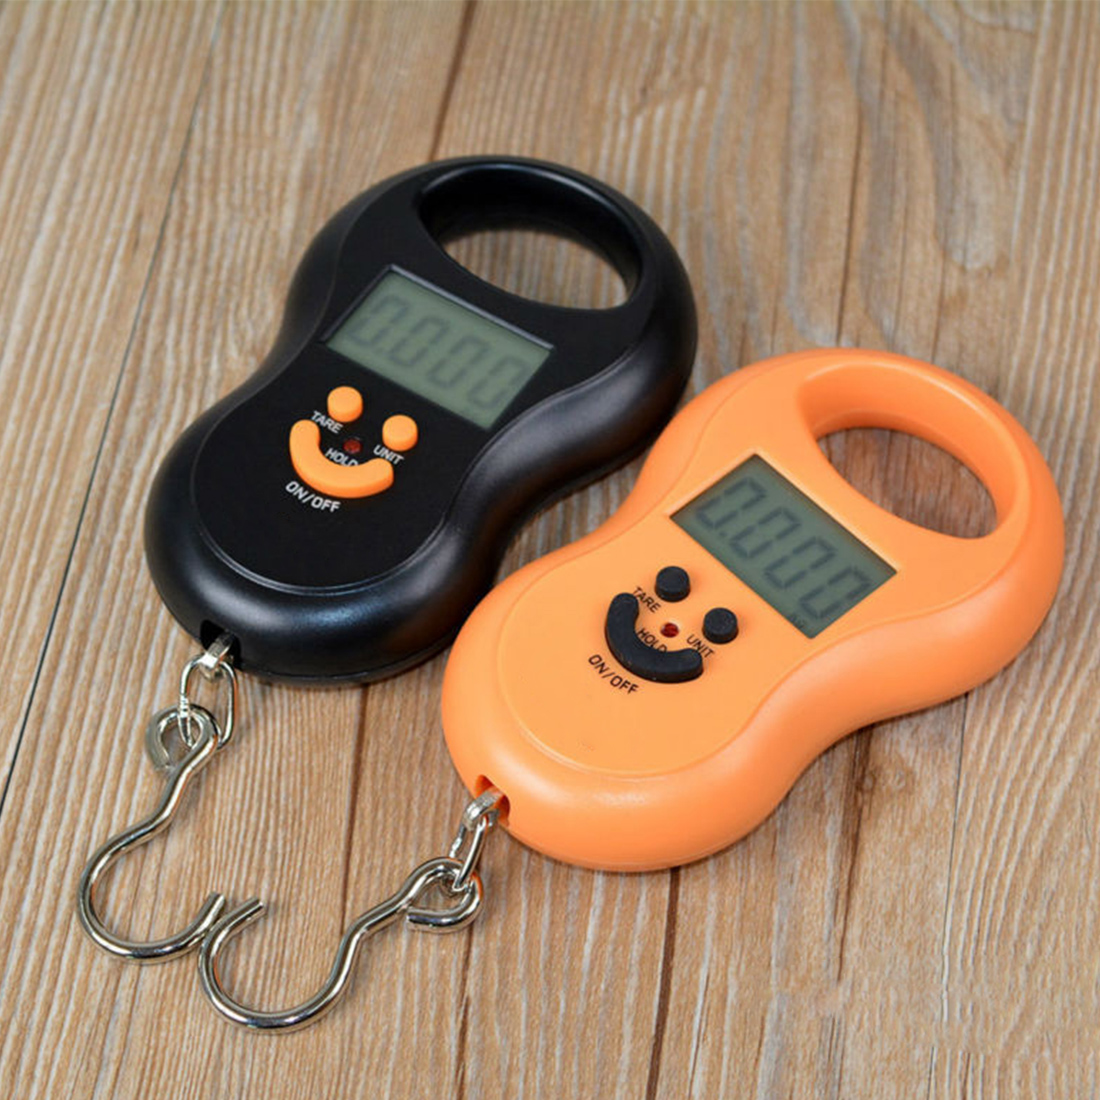 Portable Hanging Scale 50Kg /10g LCD Digital Blue Backlight Pocket Weight Luggage Scales Color Random